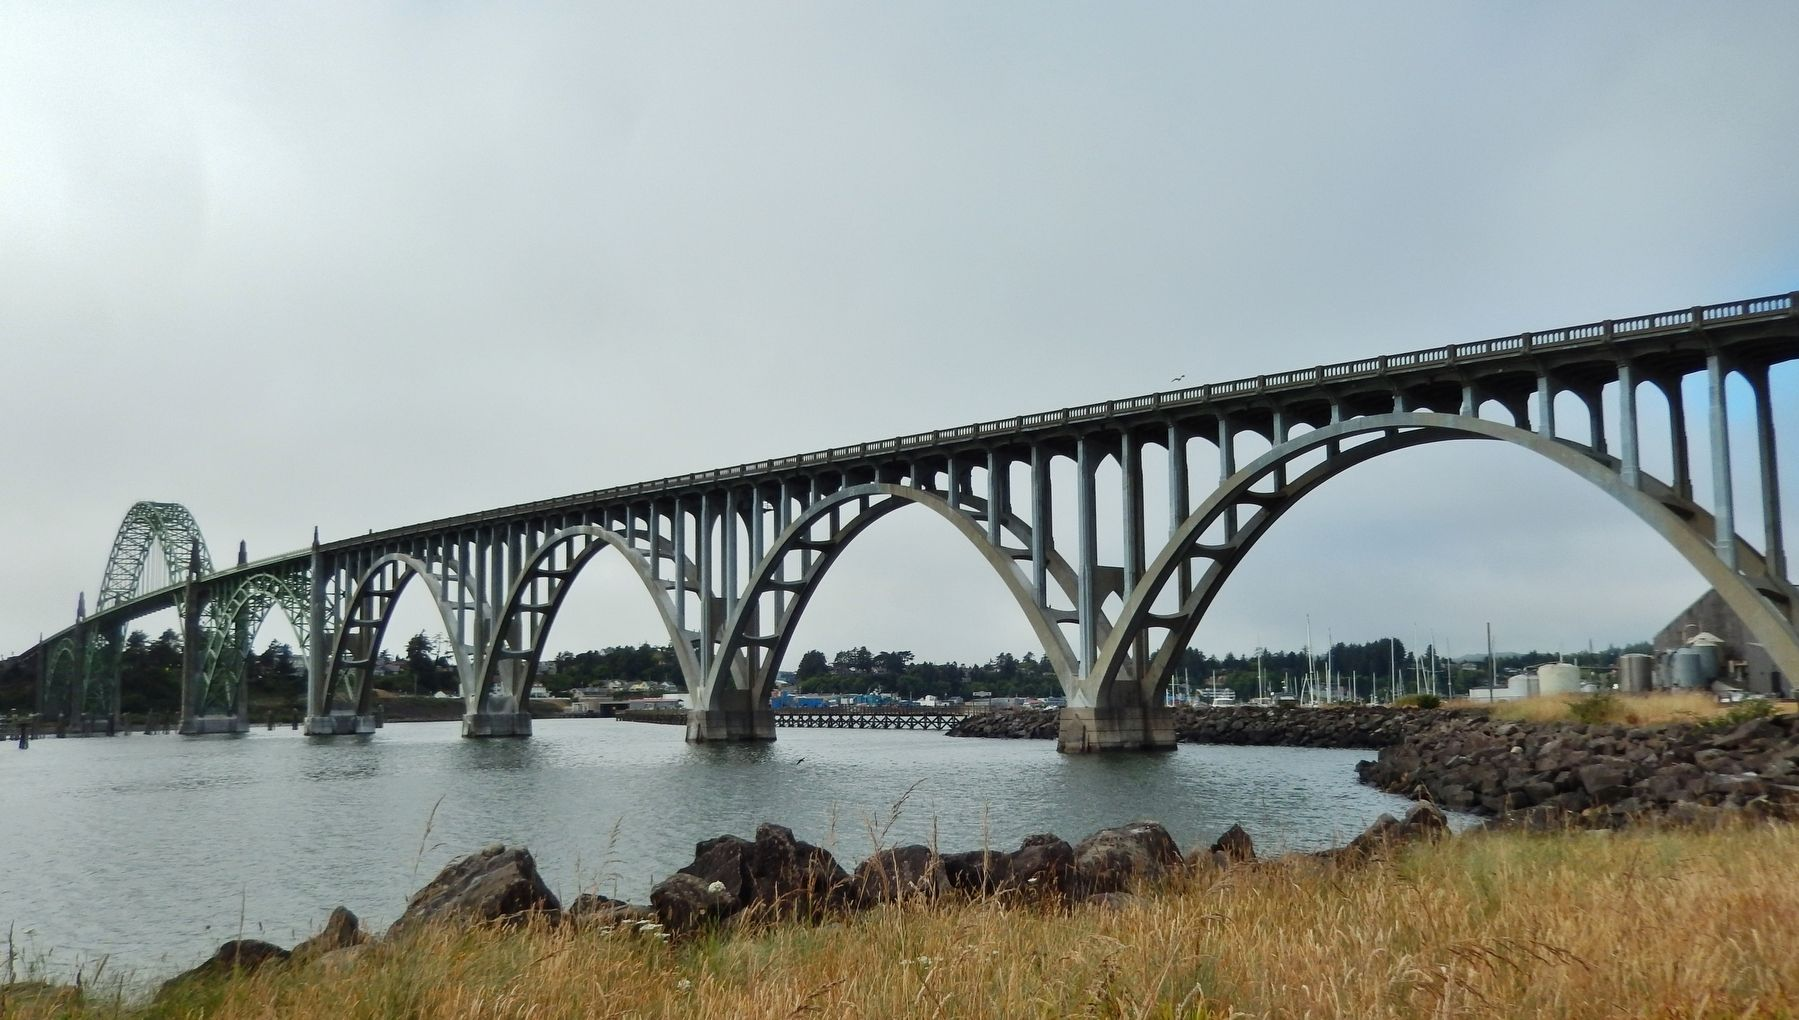 Yaquina Bay Bridge (<i>concrete arches at south end of bridge</i>) image. Click for full size.